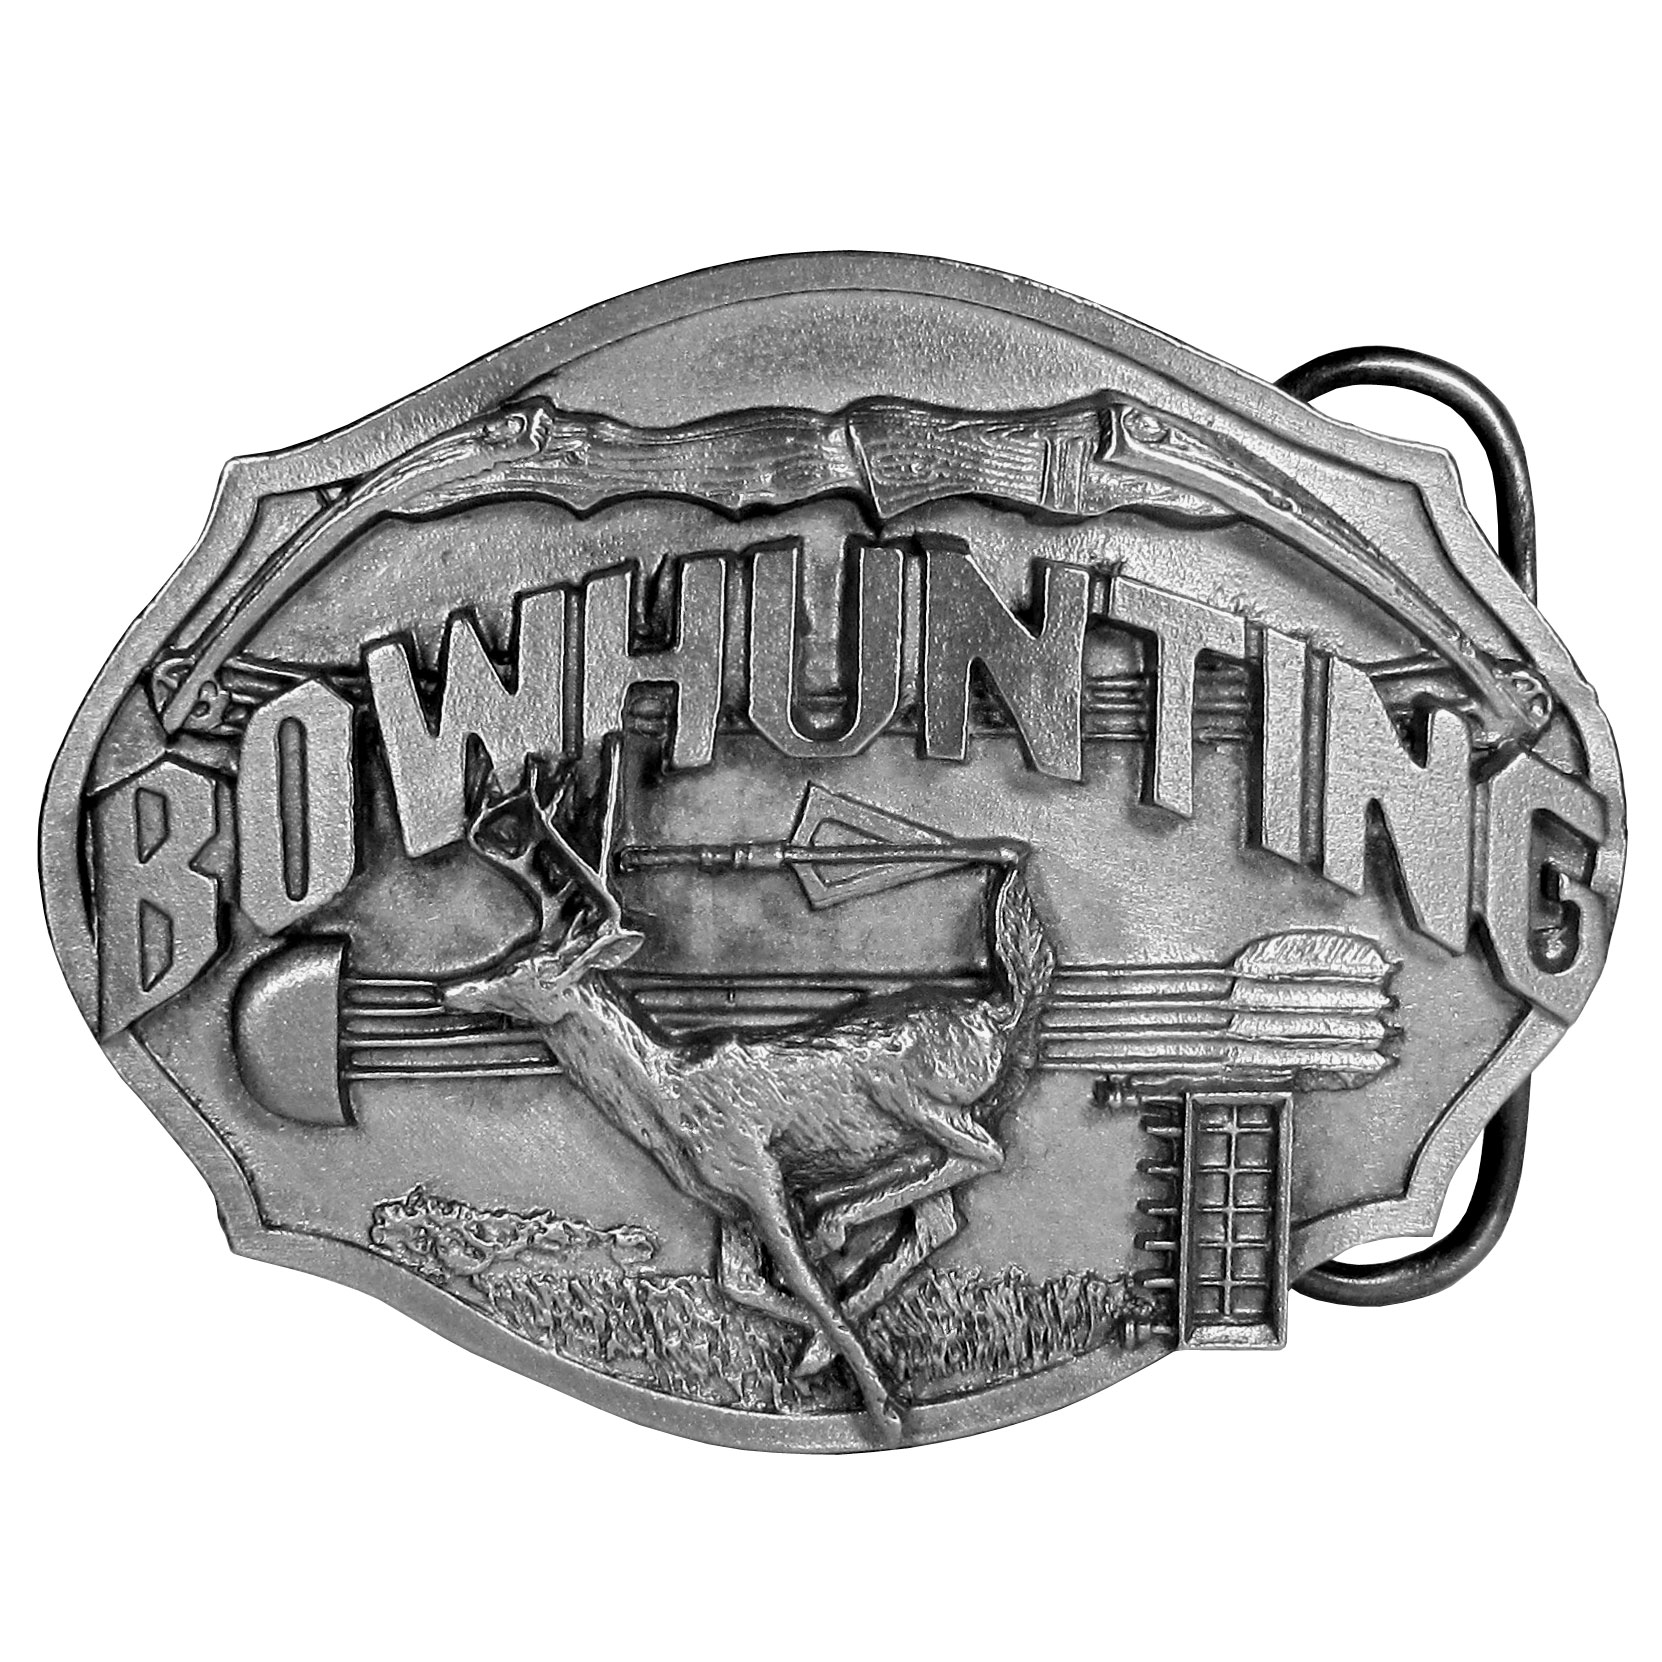 "Bowhunting Antiqued Belt Buckle - ""This belt buckle is for the bowhunter! Buckle features a deer jumping through a field with a bow and arrows and the word """"Bowhunter"""" in bold. On the back are the words, """"The sport of bowhunting is the ultimate hunting experience. It requires great skill and patience."""" This exquisitely carved buckle is made of fully cast metal with a standard bale that fits up to 2"""" belts."""